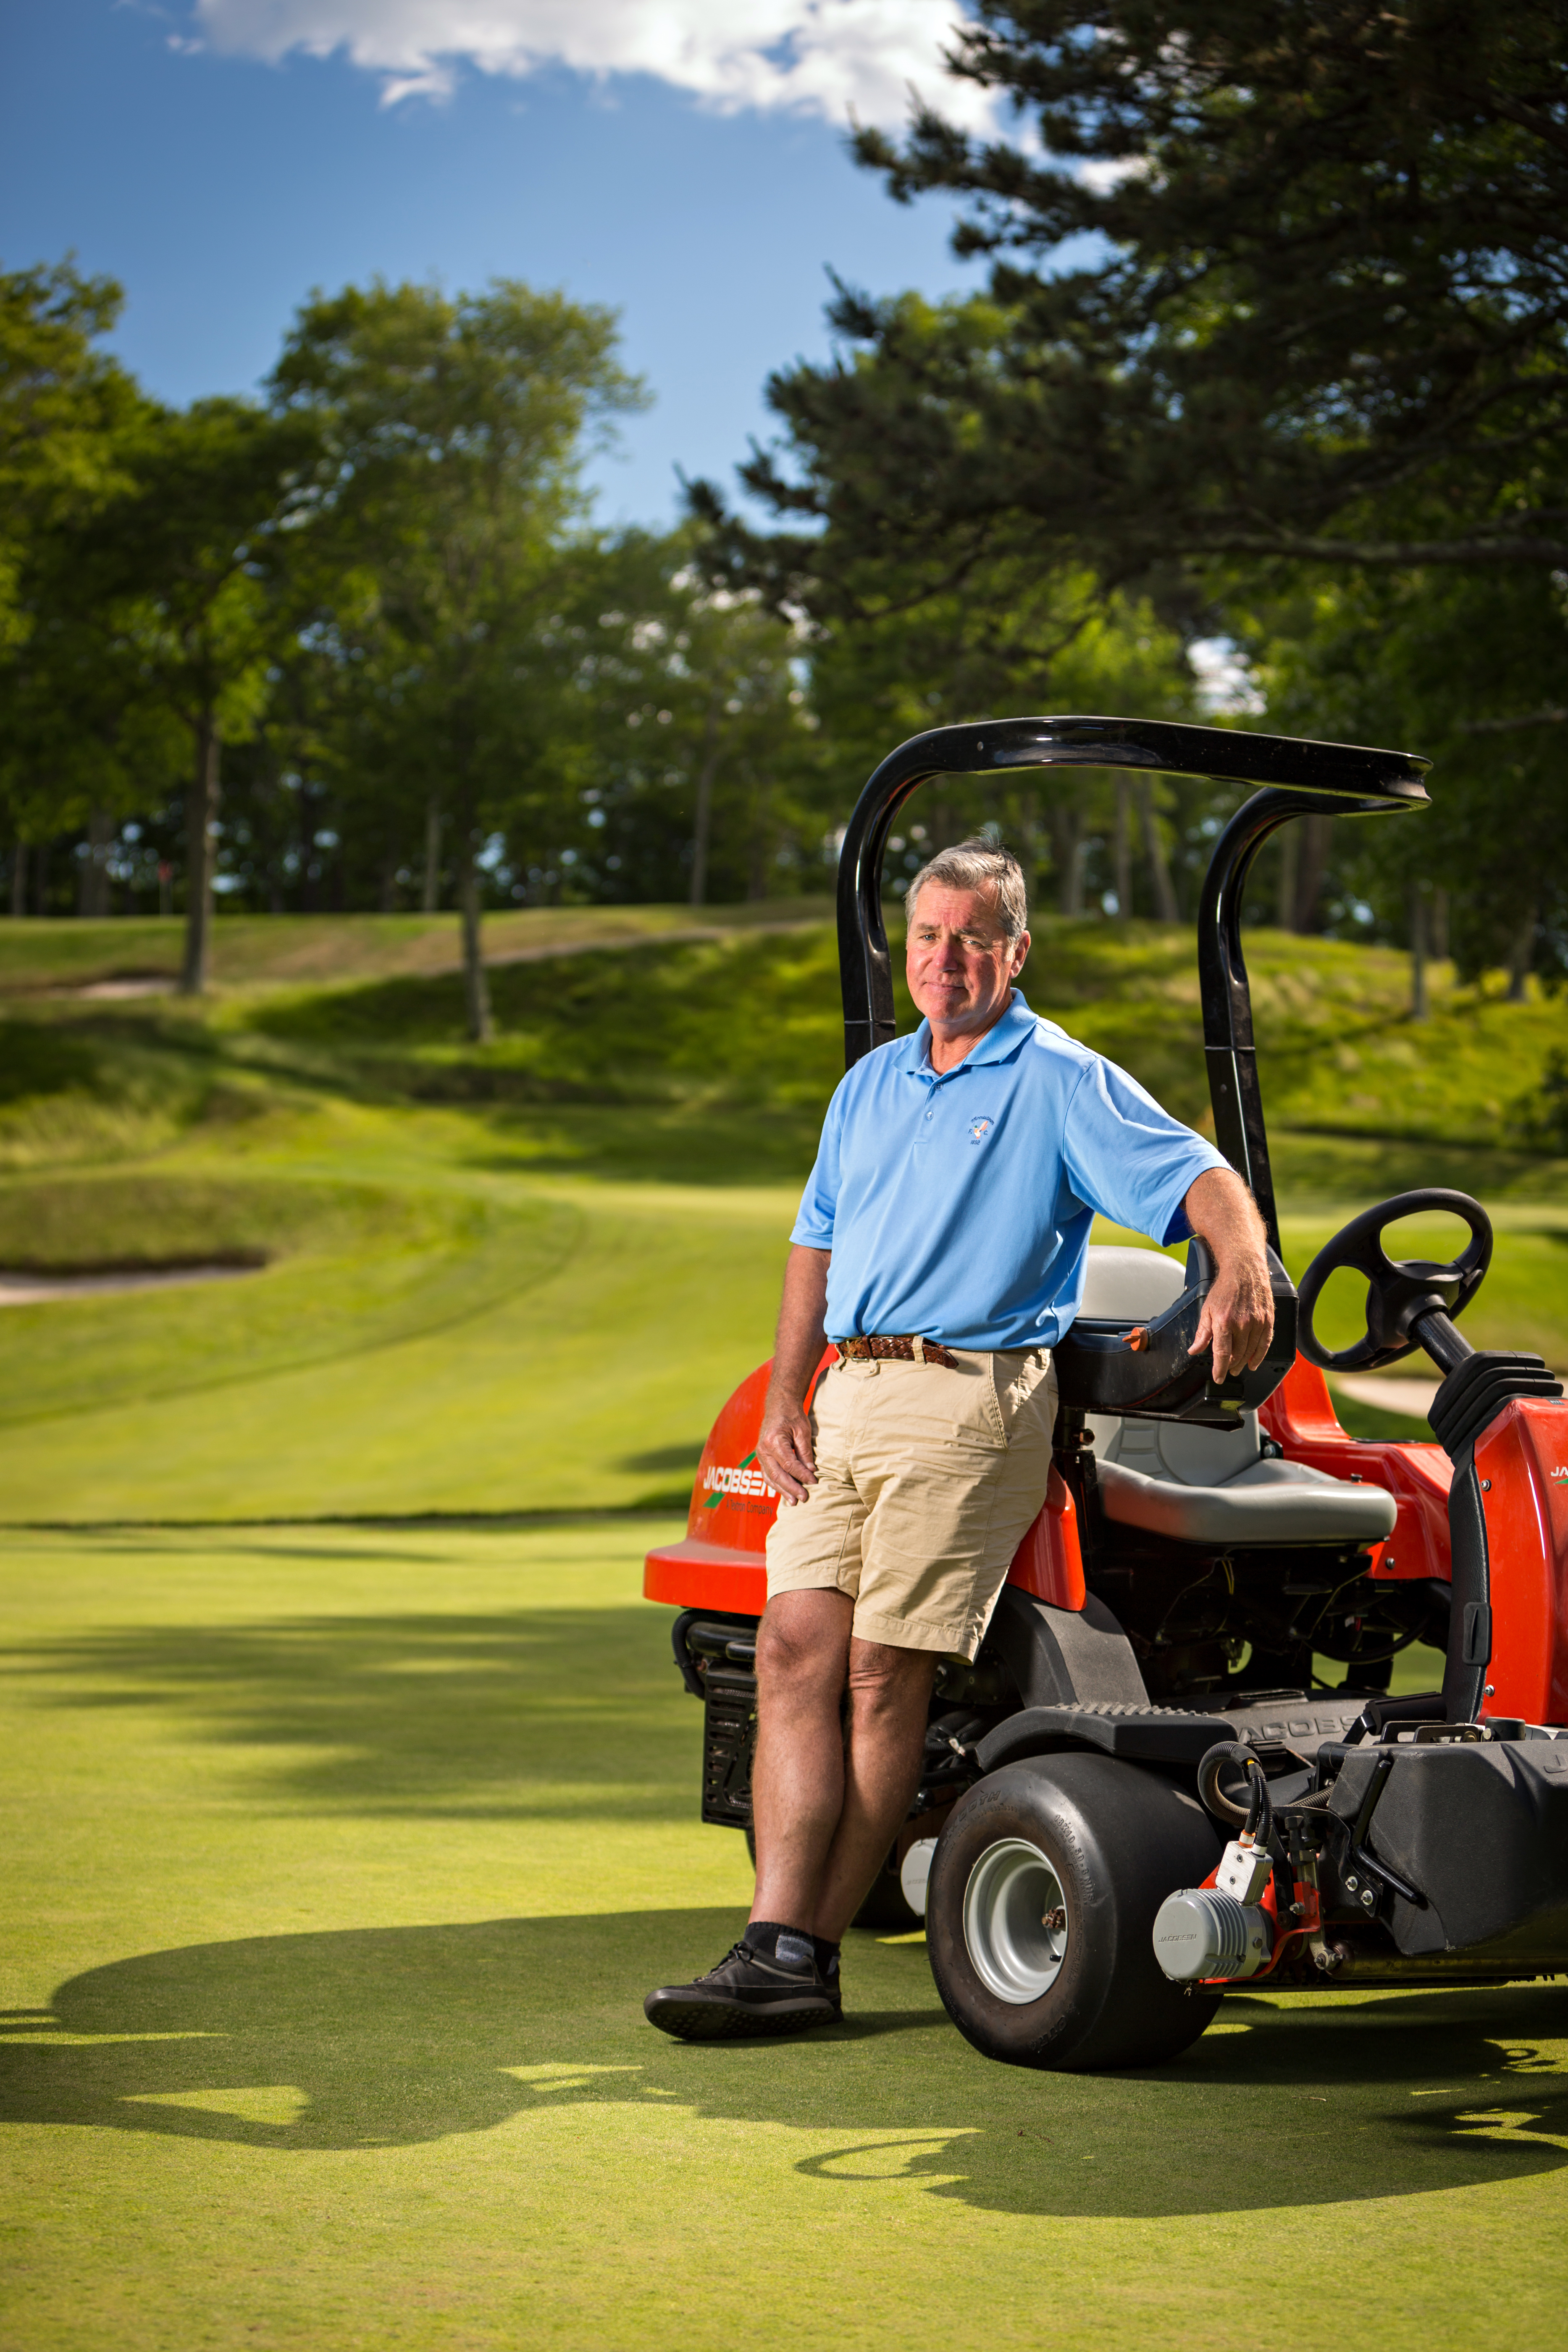 Steve Carr's father, Bill, once owned the club. He's been the golf course superintendent since 1975.